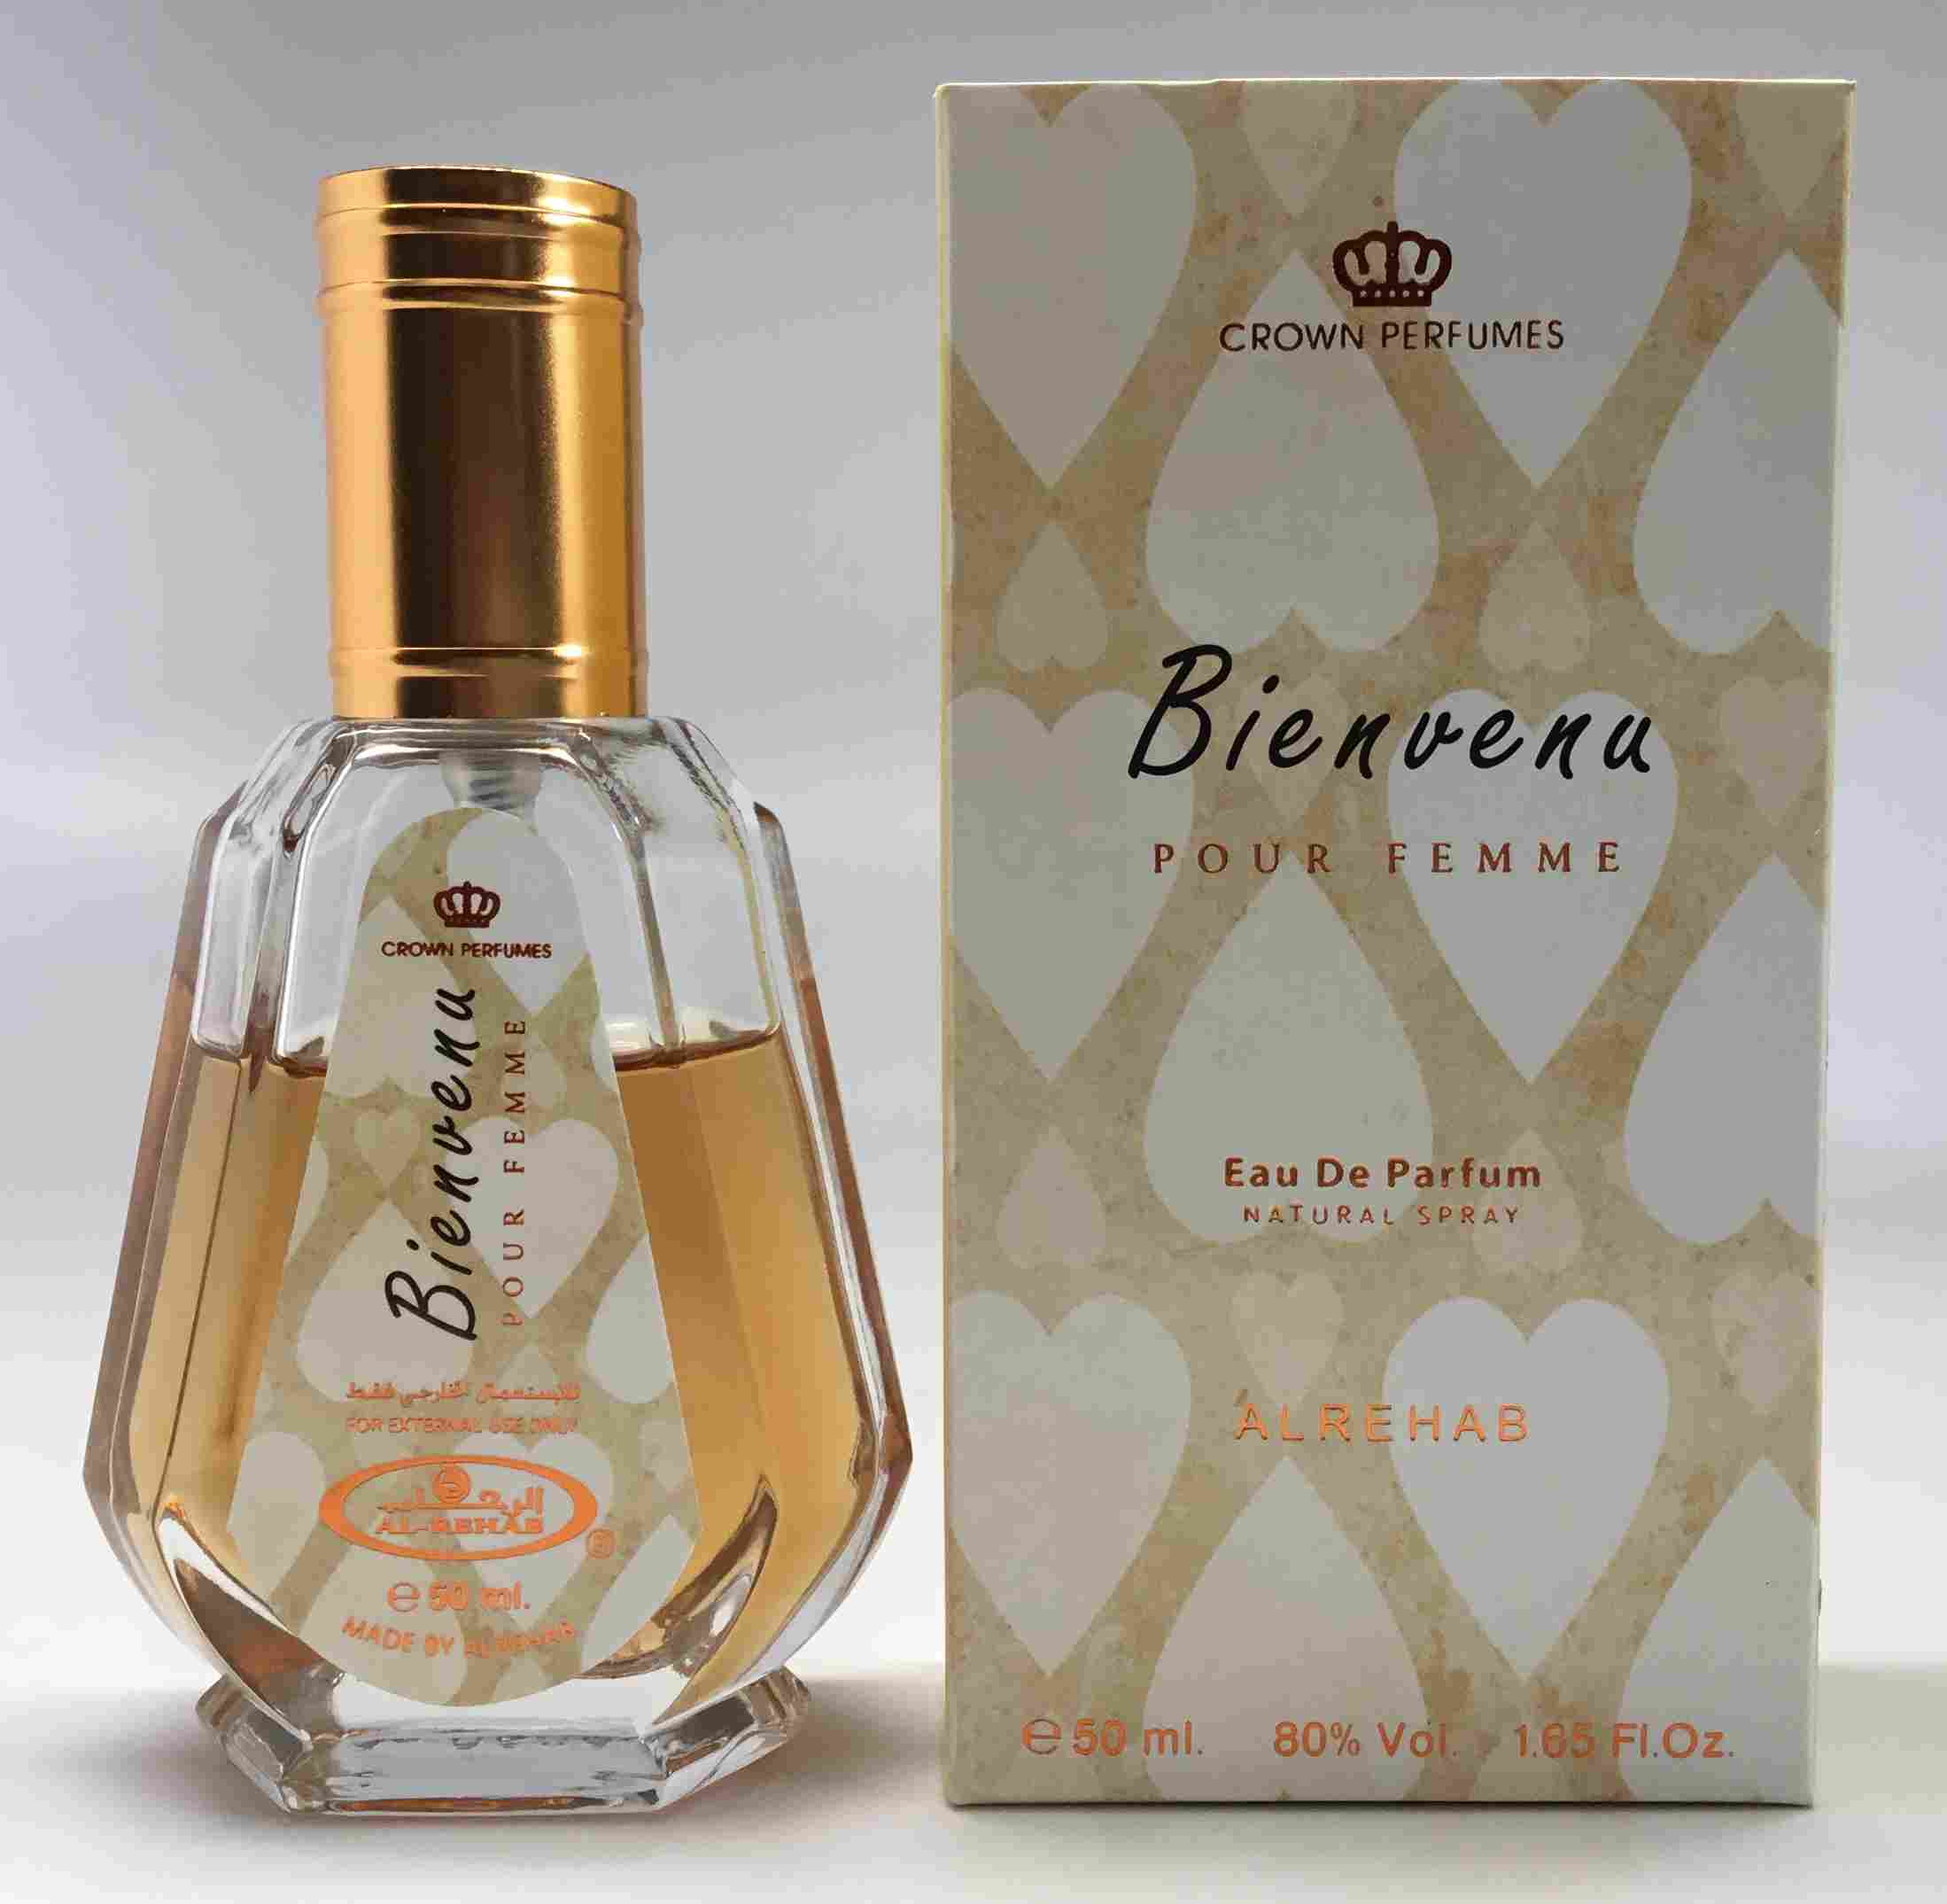 Bienvana SAMPLE - Al-Rehab Eau De Natural Perfume Spray - 35 ml (1.15 fl. oz)